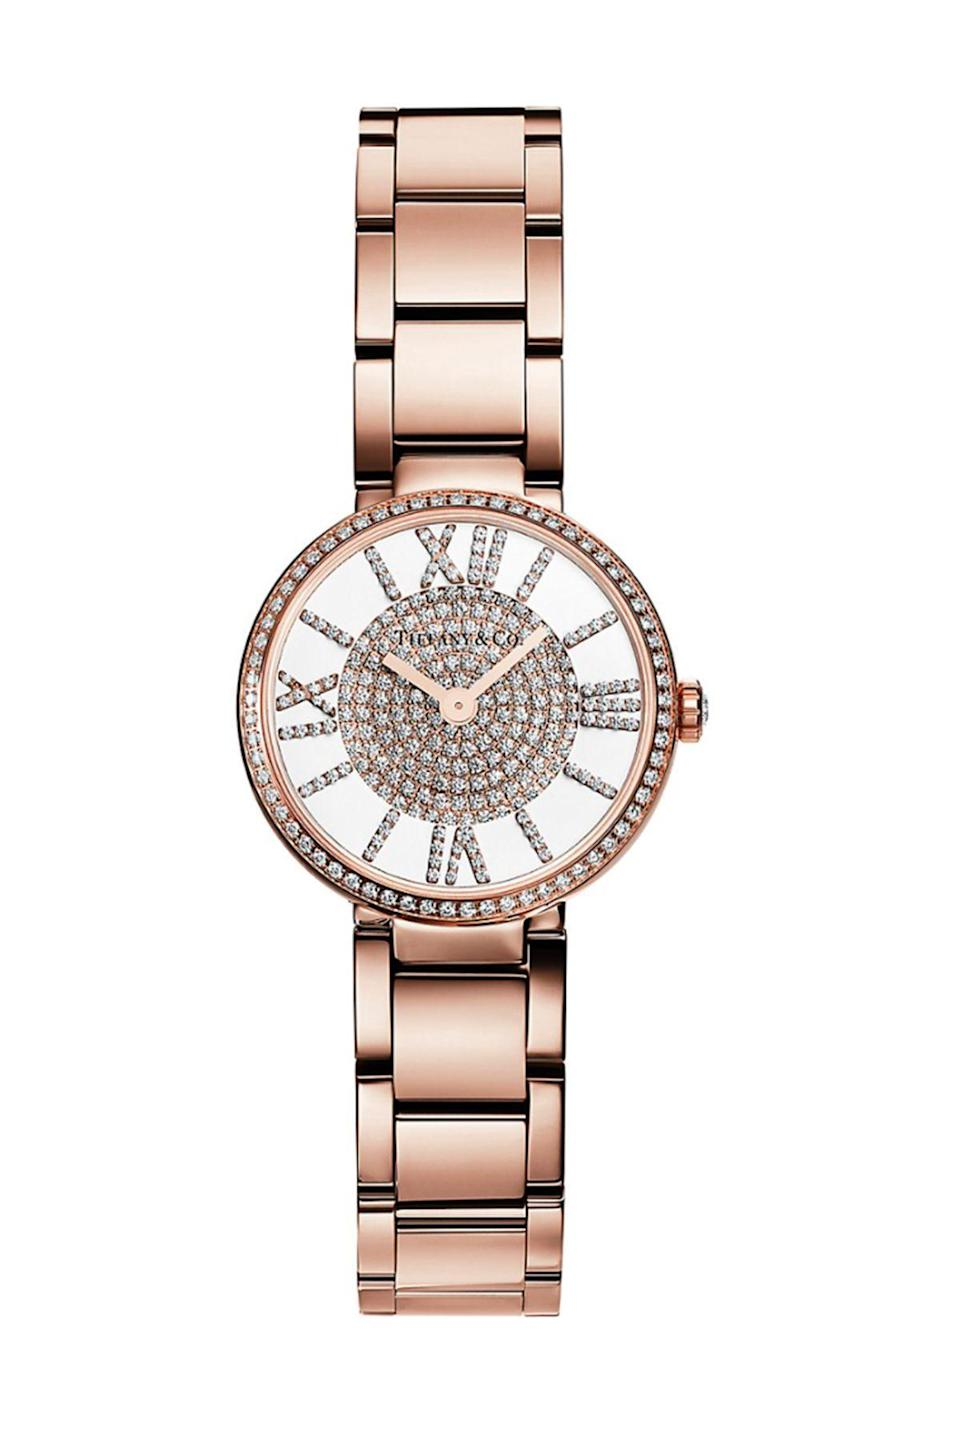 """<p><strong>Tiffany & Co.</strong></p><p>tiffany.com</p><p><strong>$30000.00</strong></p><p><a href=""""https://www.tiffany.com/watches/womens-watches/atlas-2-hand-24-mm-watch-69291708/"""" rel=""""nofollow noopener"""" target=""""_blank"""" data-ylk=""""slk:Shop Now"""" class=""""link rapid-noclick-resp"""">Shop Now</a></p><p>Rose gold with diamonds makes for a combination that is so fun and flattering you'll want to wear this piece every day.</p>"""